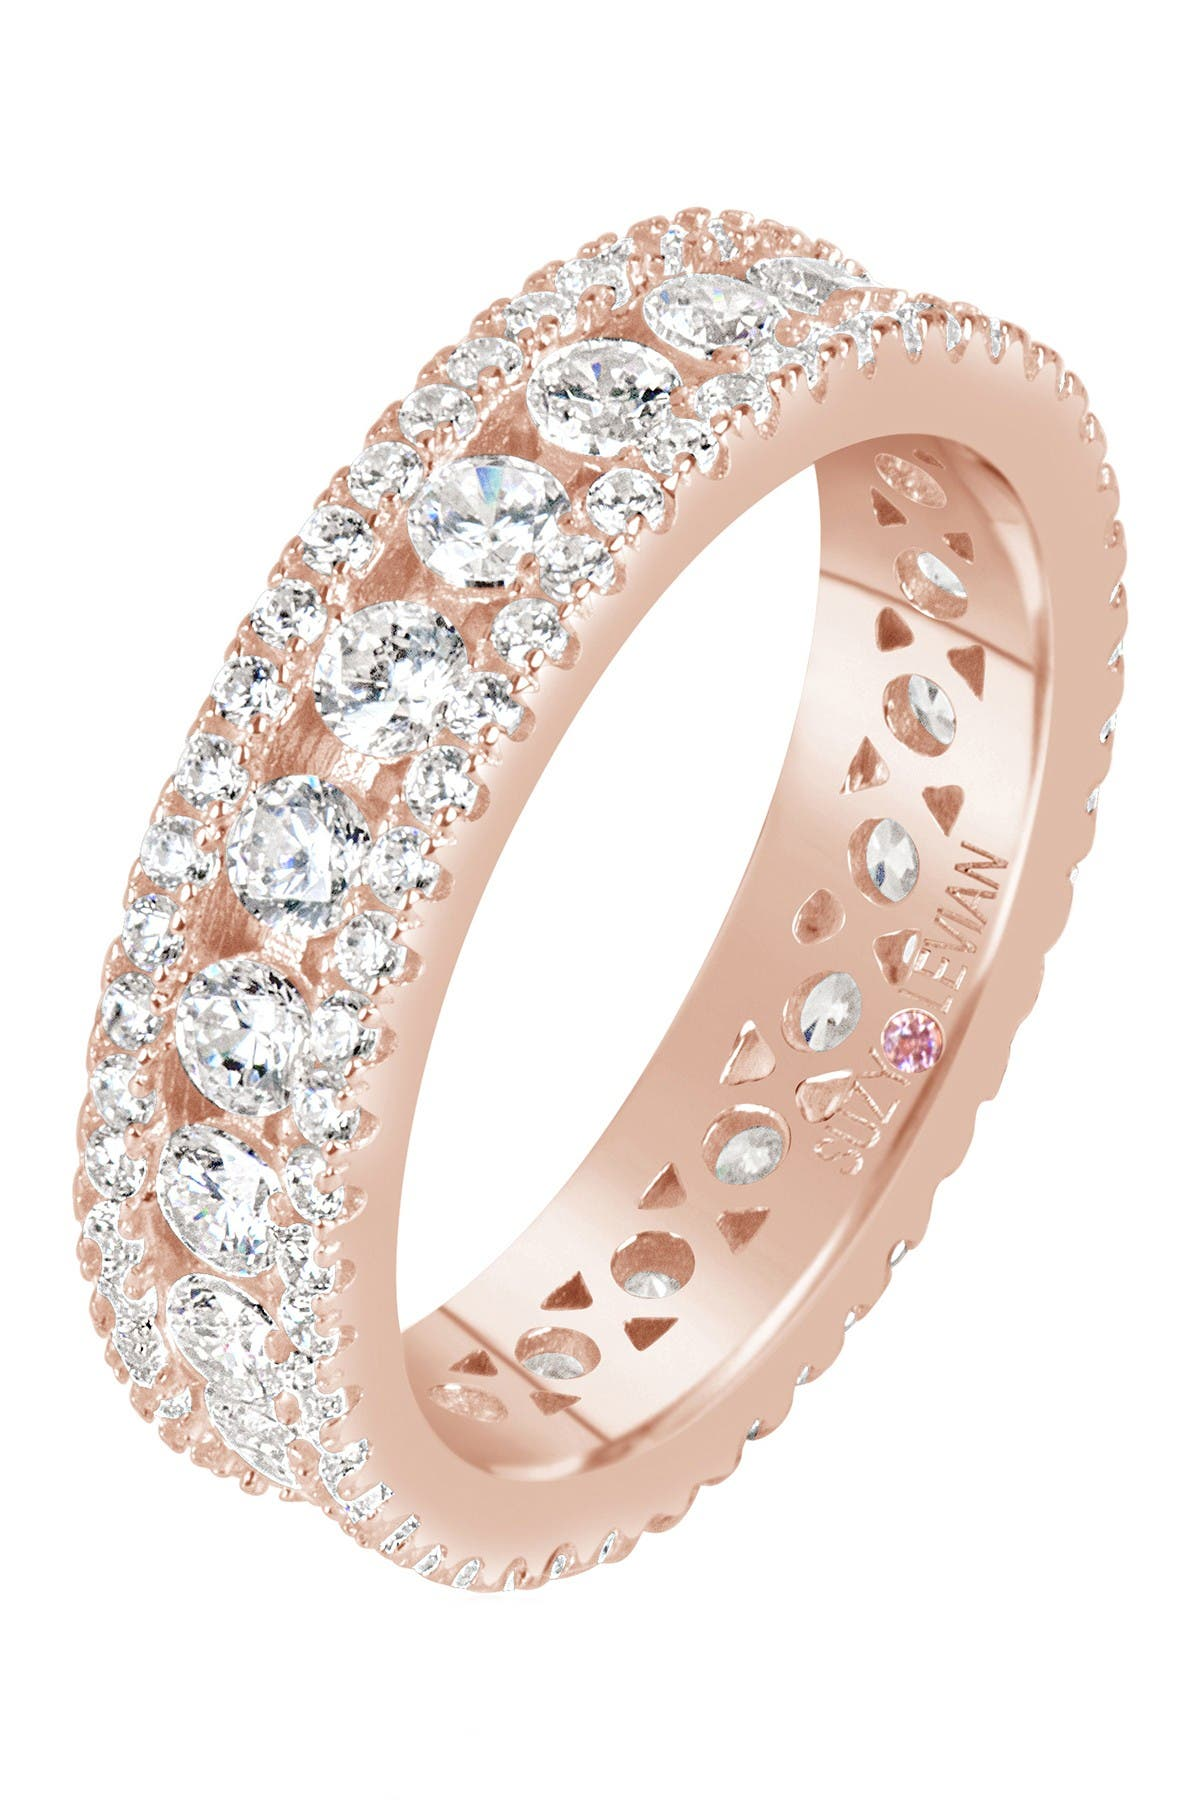 Image of Suzy Levian 14K Rose Gold Plated Sterling Silver CZ Three Row Modern Eternity Band Ring